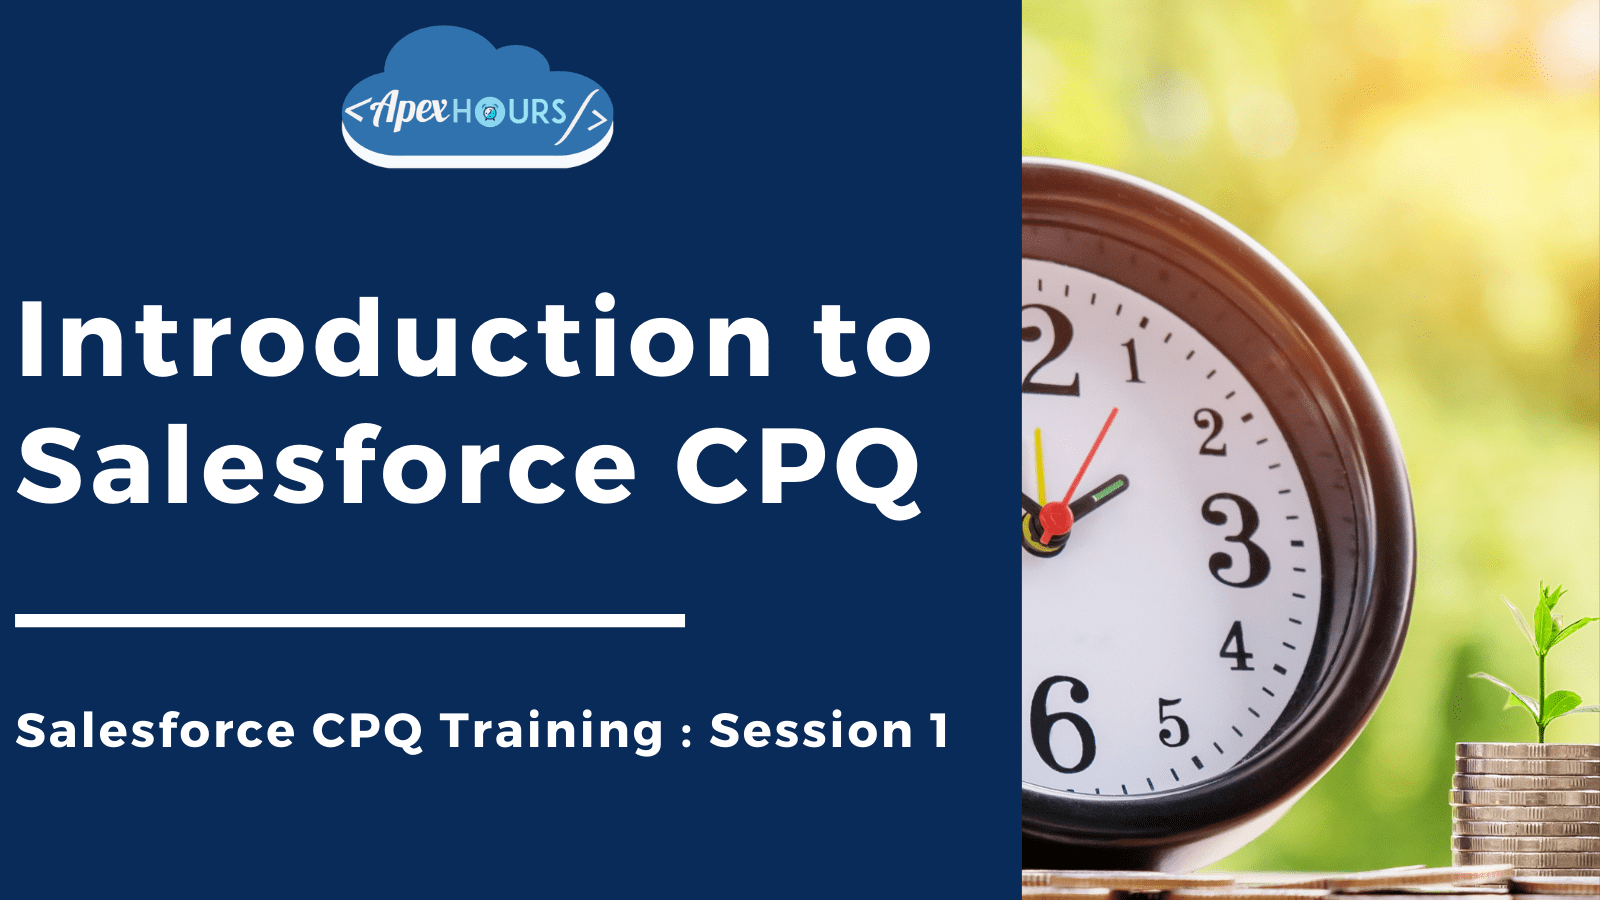 Introduction to Salesforce CPQ